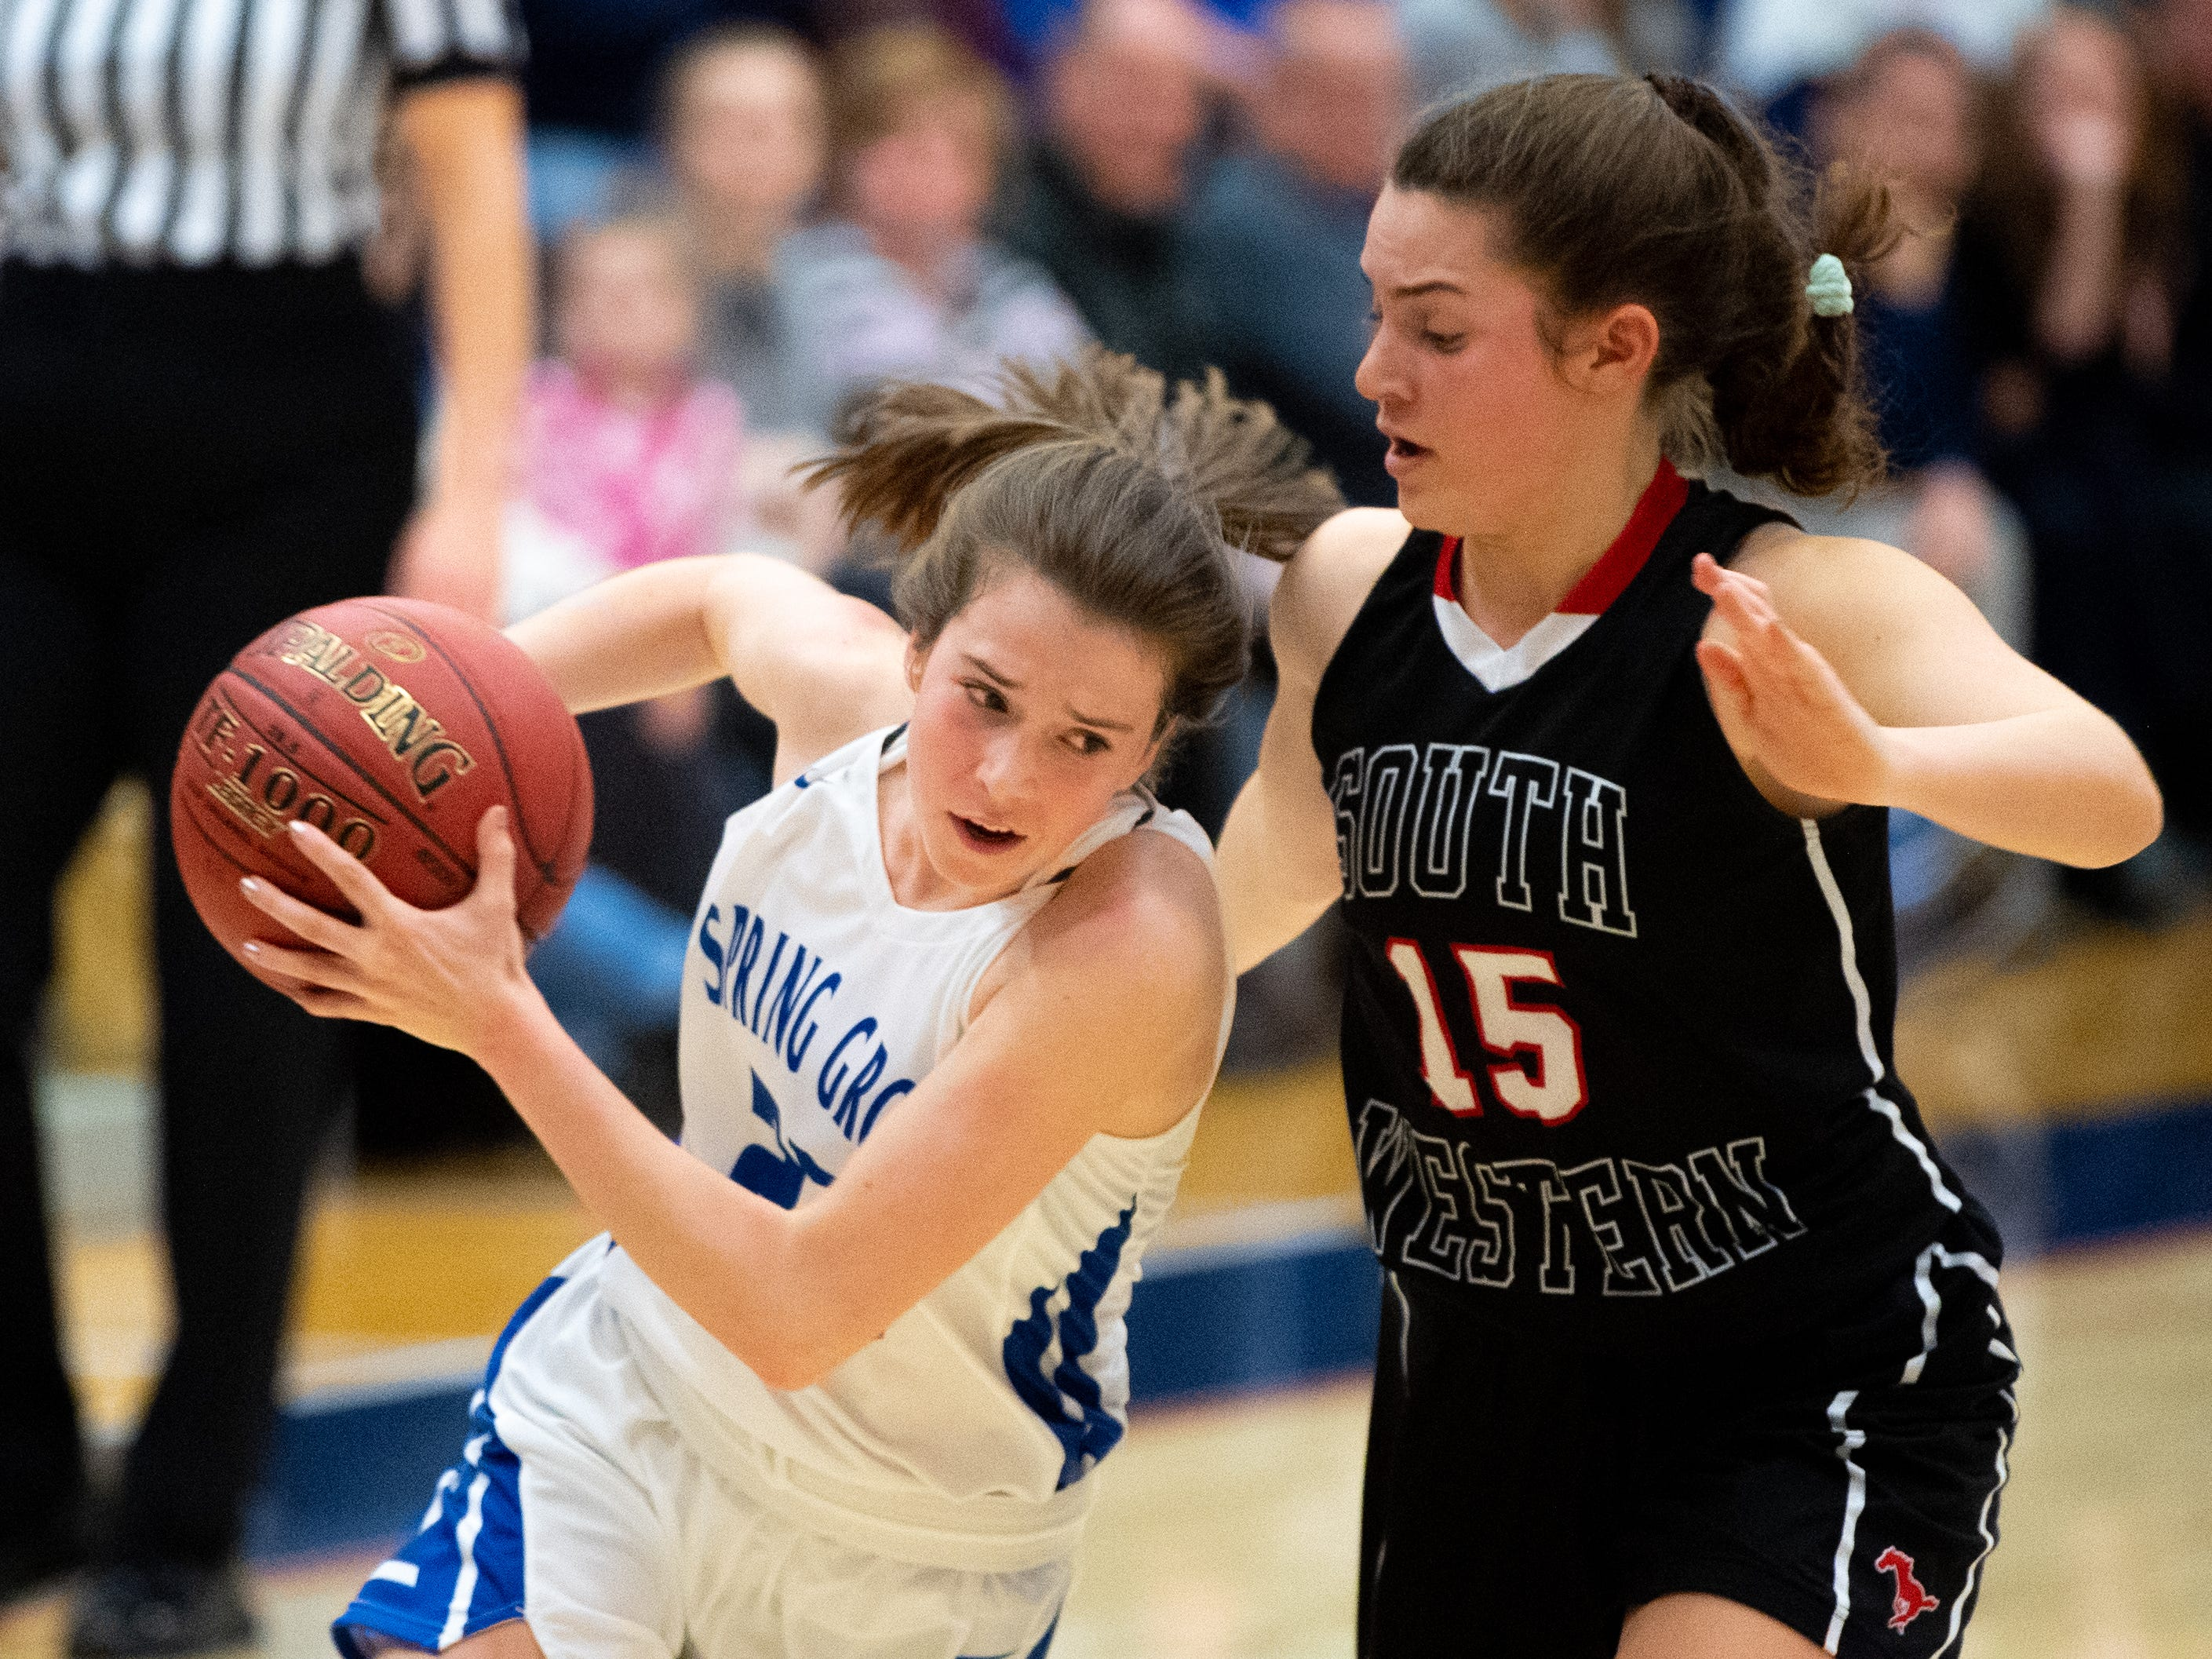 Ella Kale (22) of Spring Grove protects the ball during the girls' basketball game between Spring Grove and South Western, Friday, January 11, 2019. The Rockets defeated the Mustangs 51 to 38.